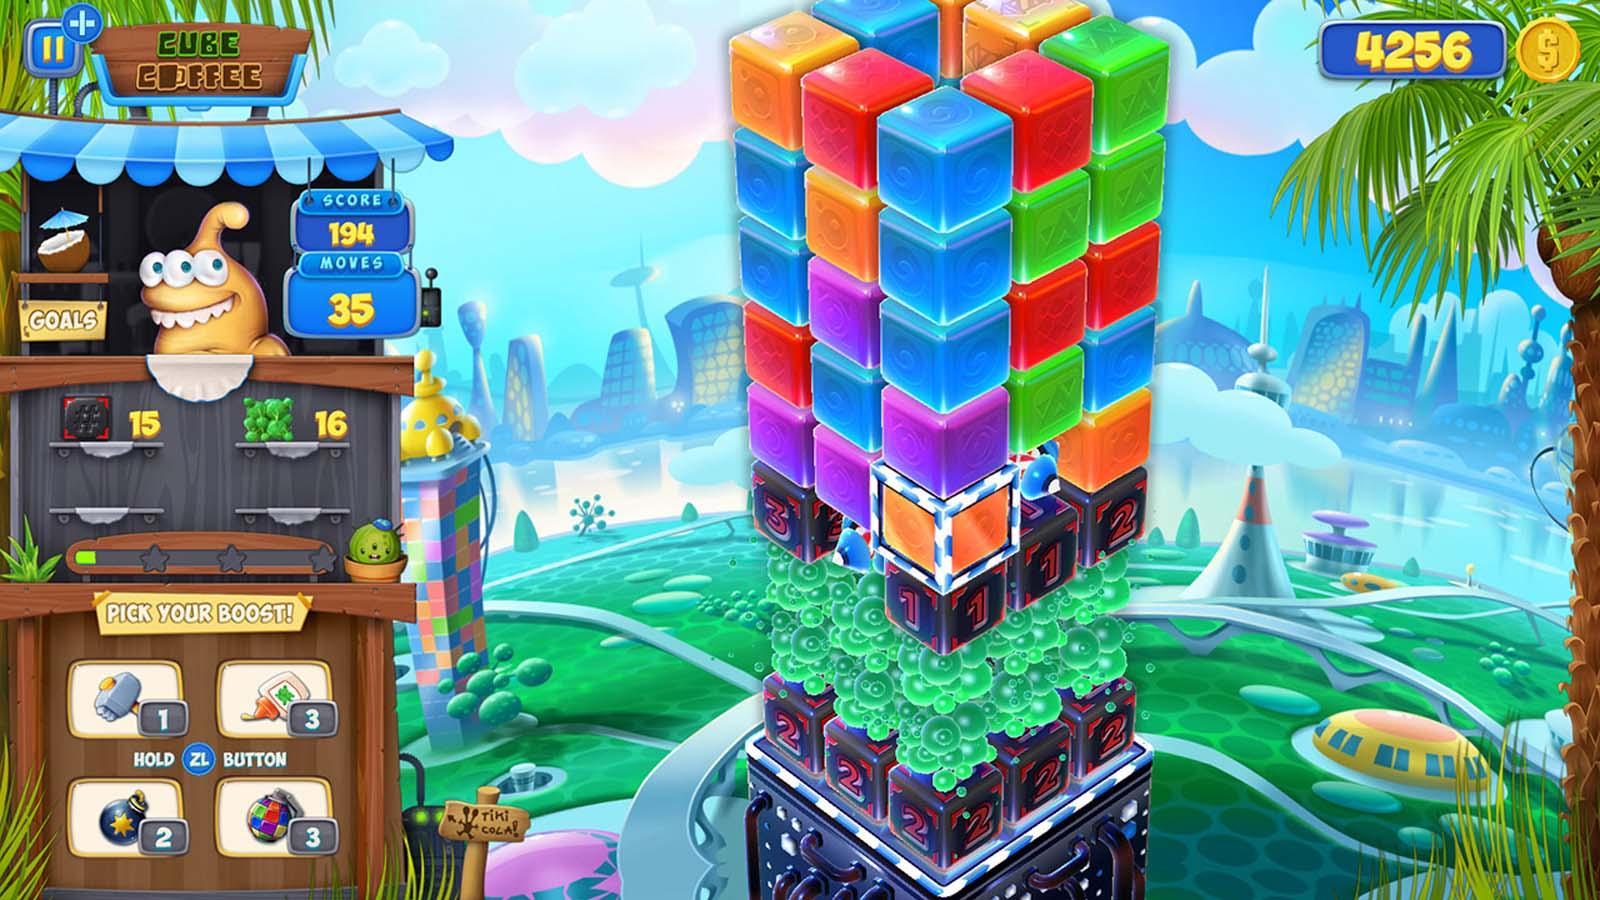 Cube Blast Match Review